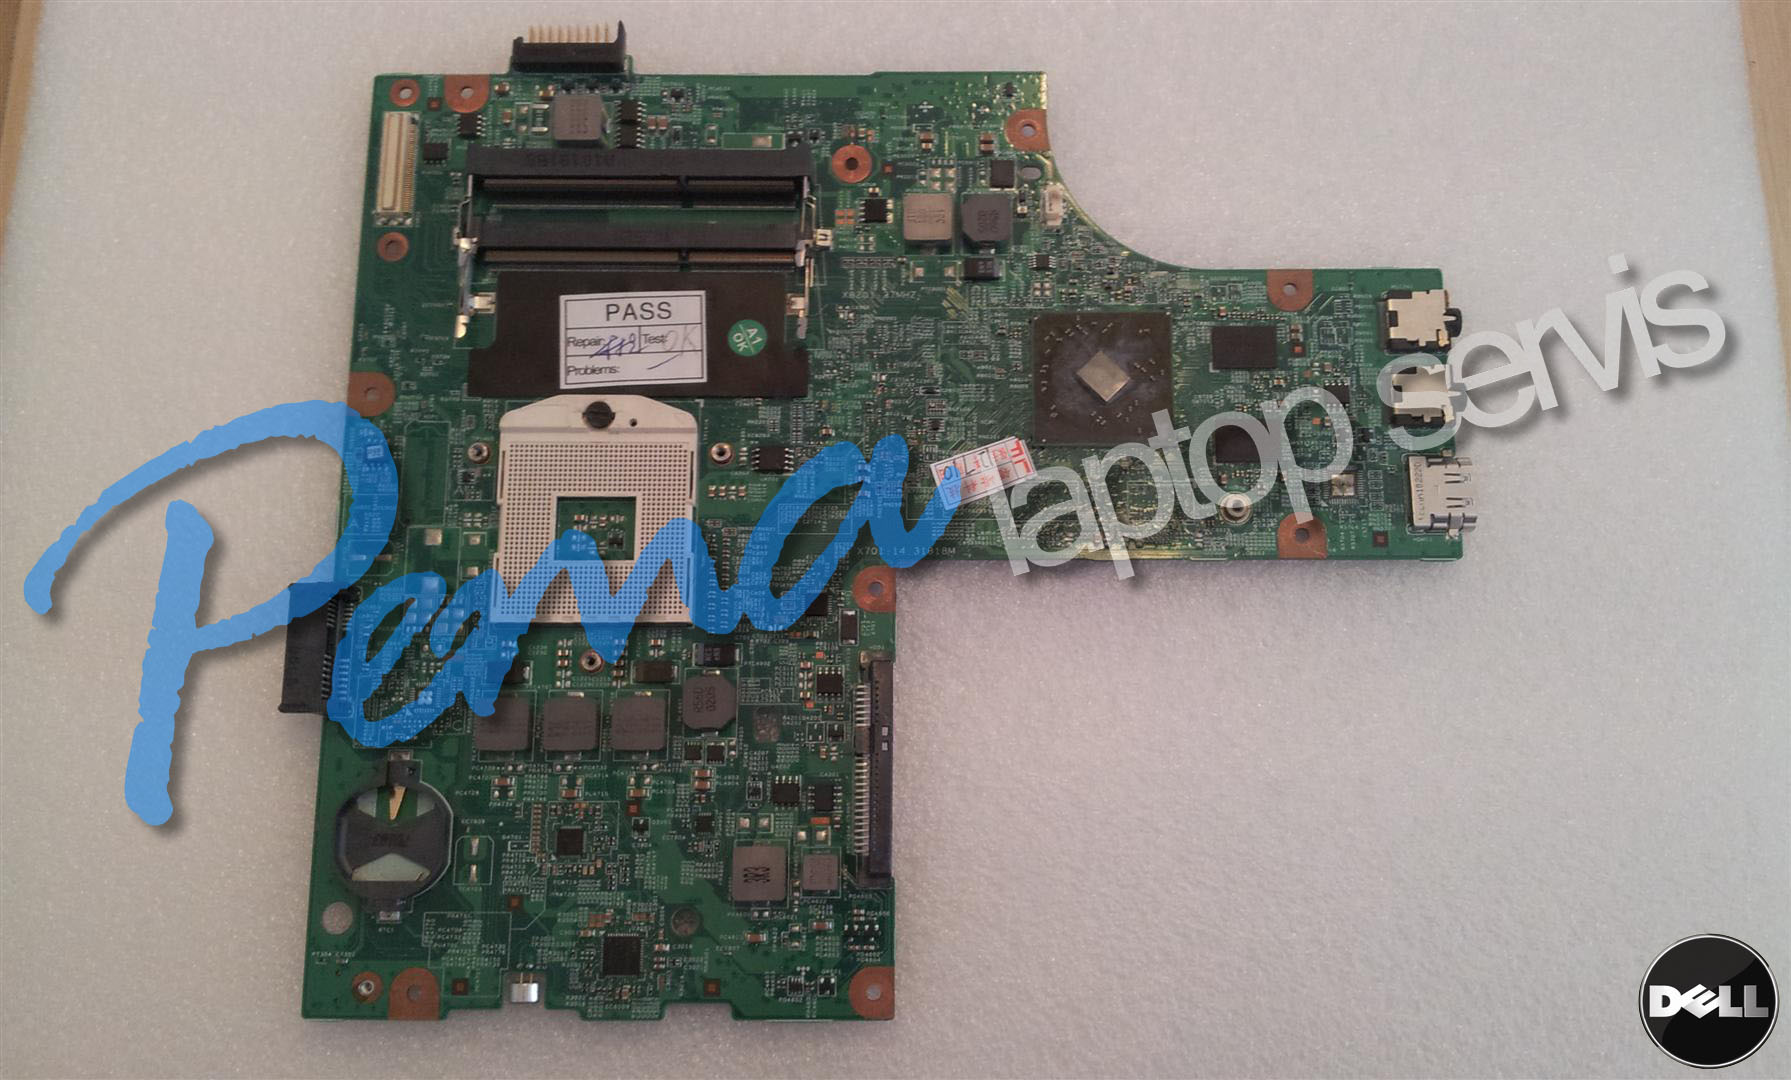 dell Inspiron 5010 anakart